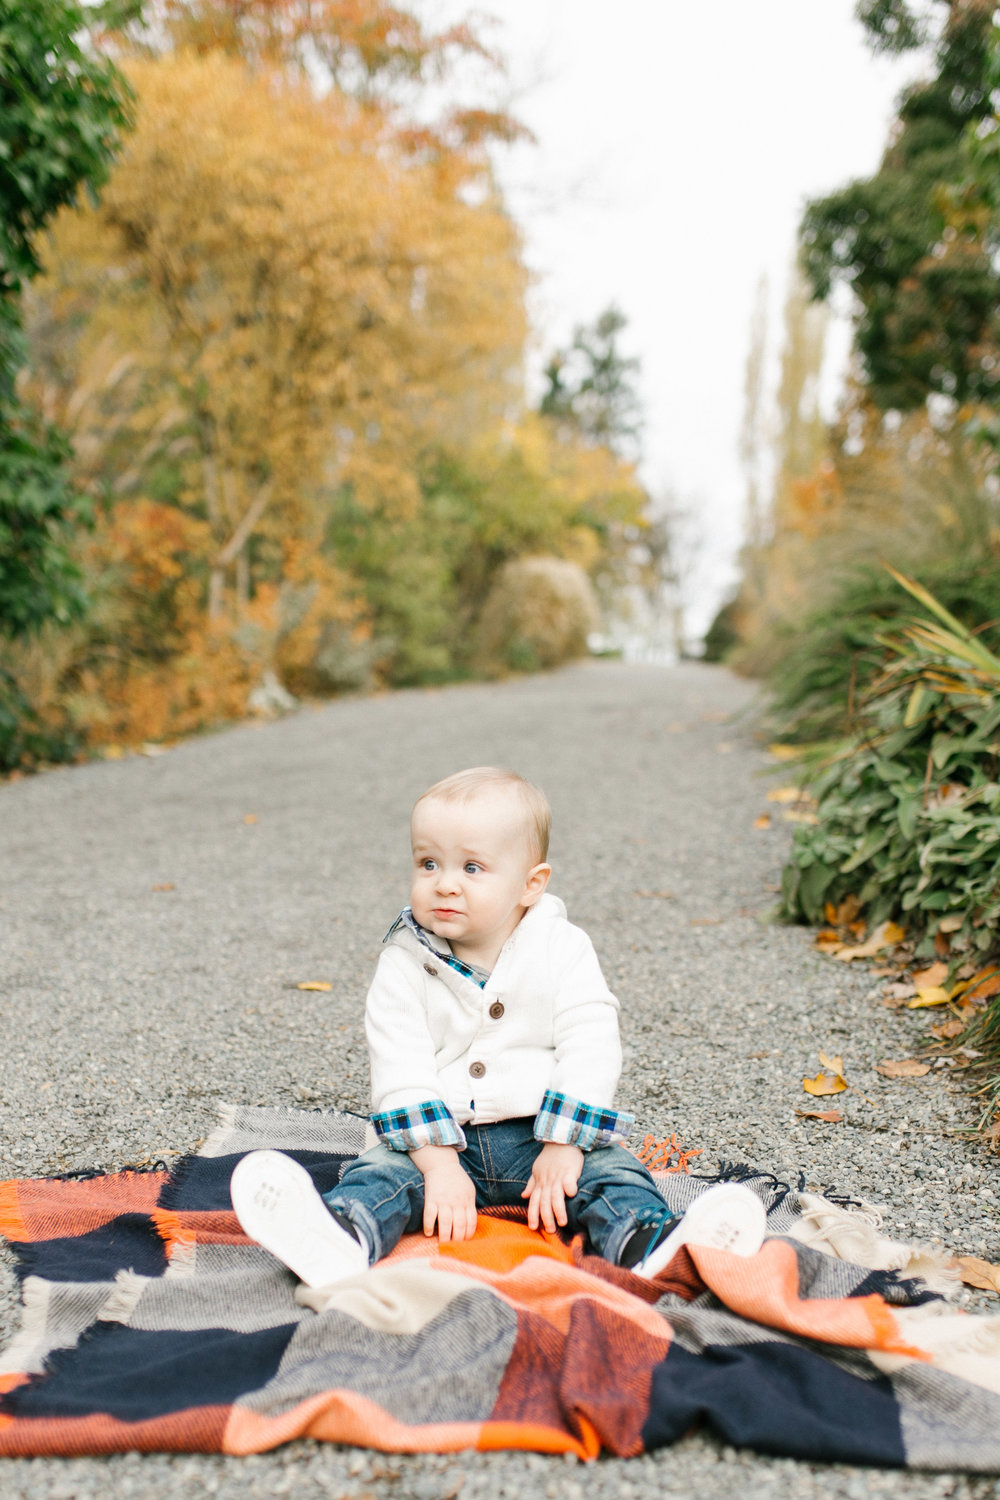 Fall Family Photography Natural Light Photo | Chelsea Macor Photography Session Outdoors Bellevue WA Lifestyle Fine Art Photography Chelsea Macor Photography-7.jpg